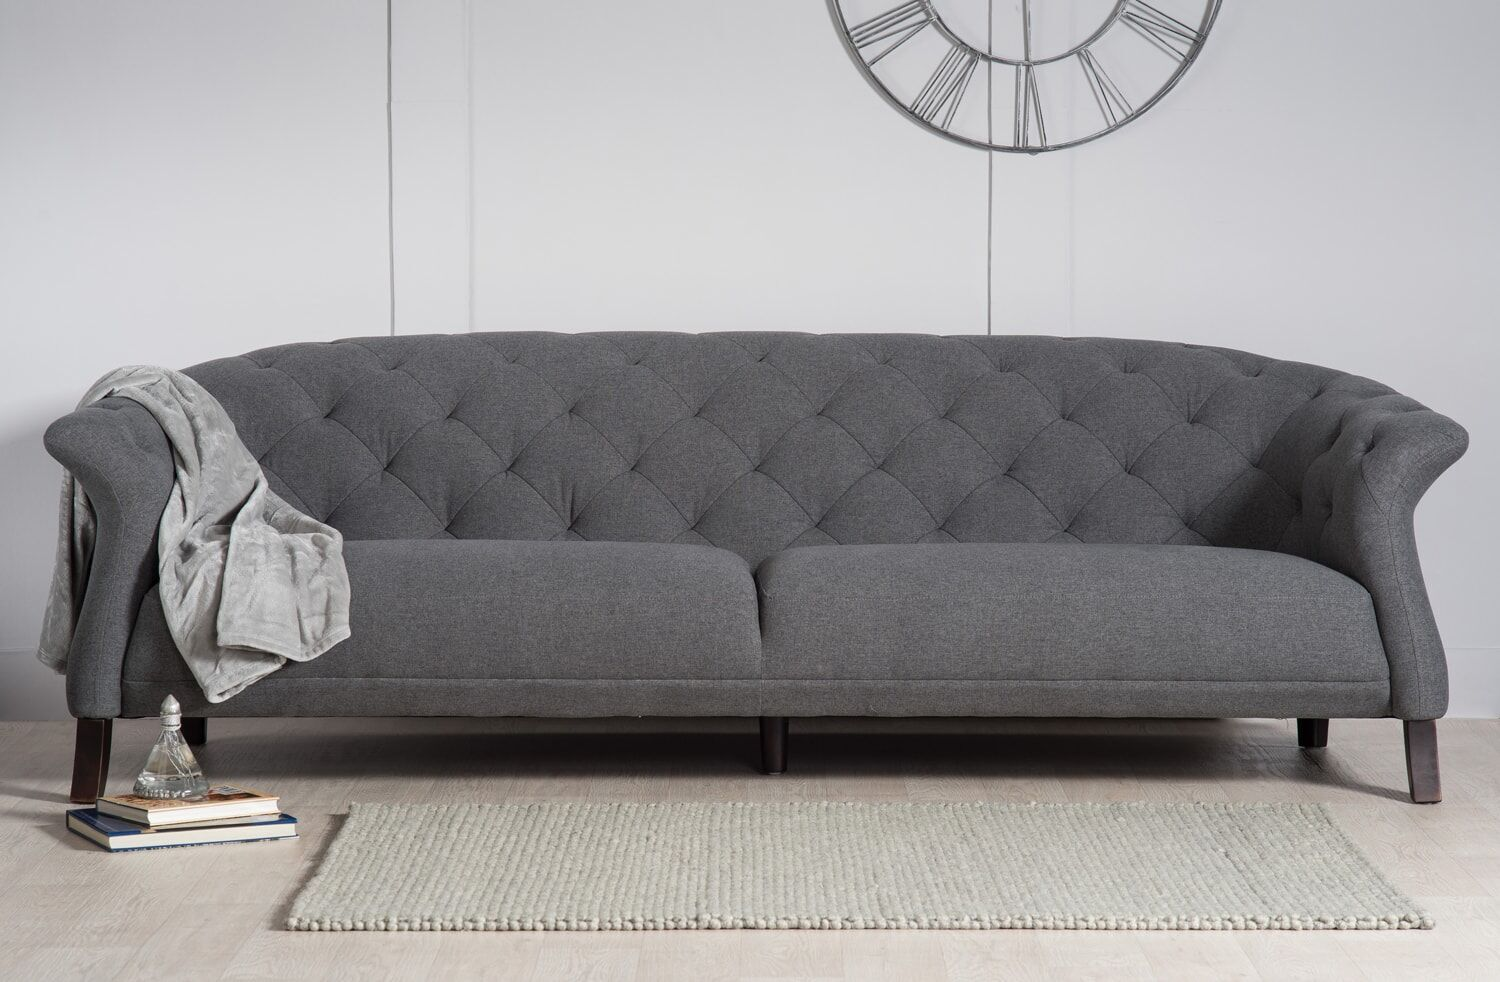 crispin 4 seater modern chesterfield sofa grey modern chesterfield. Black Bedroom Furniture Sets. Home Design Ideas